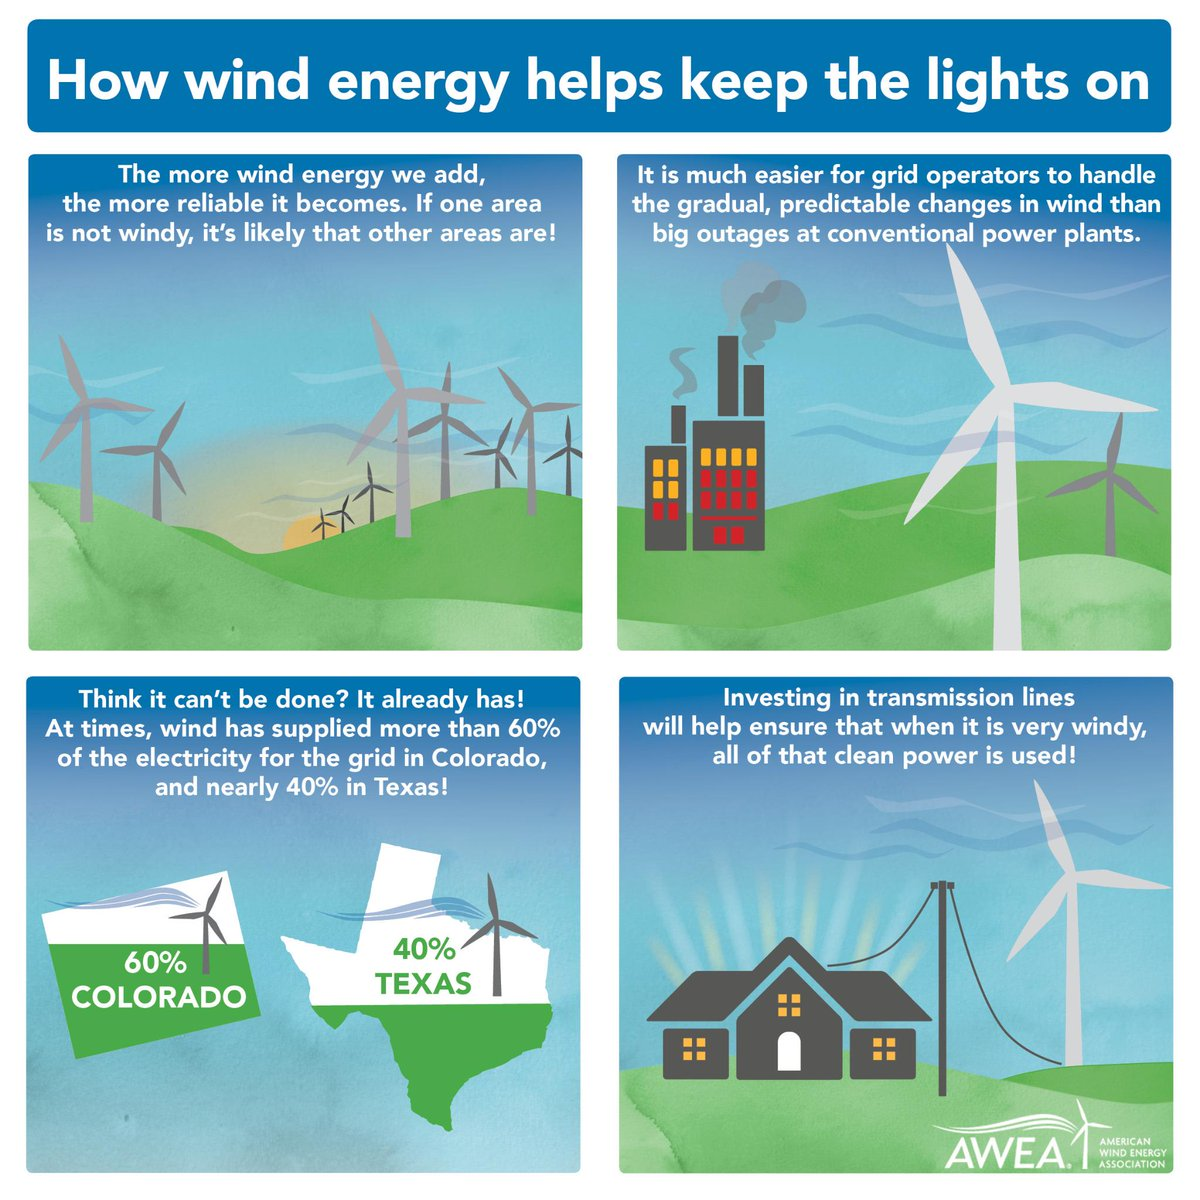 The winds change, but wind energy remains reliable -- here's how http://t.co/kfhWQw7v4A